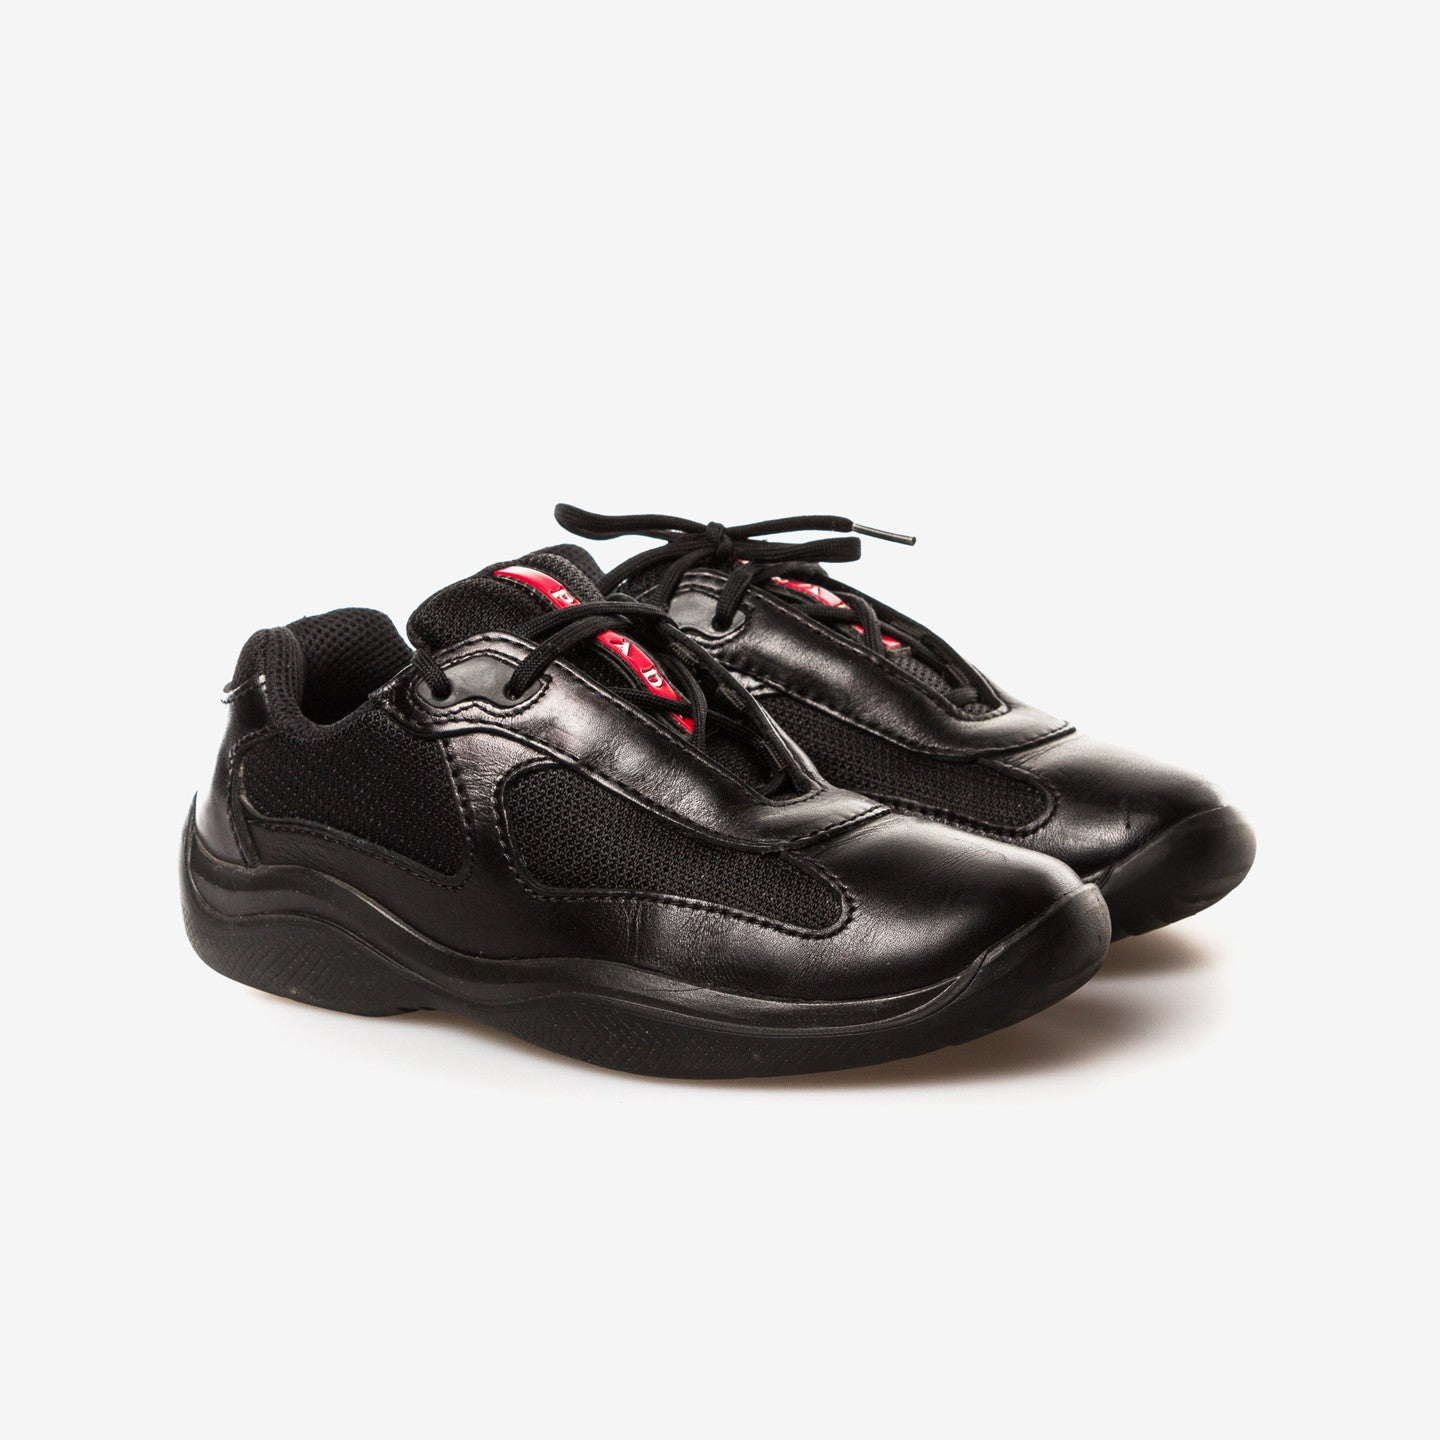 Prada Sport / Leather low-top sneakers